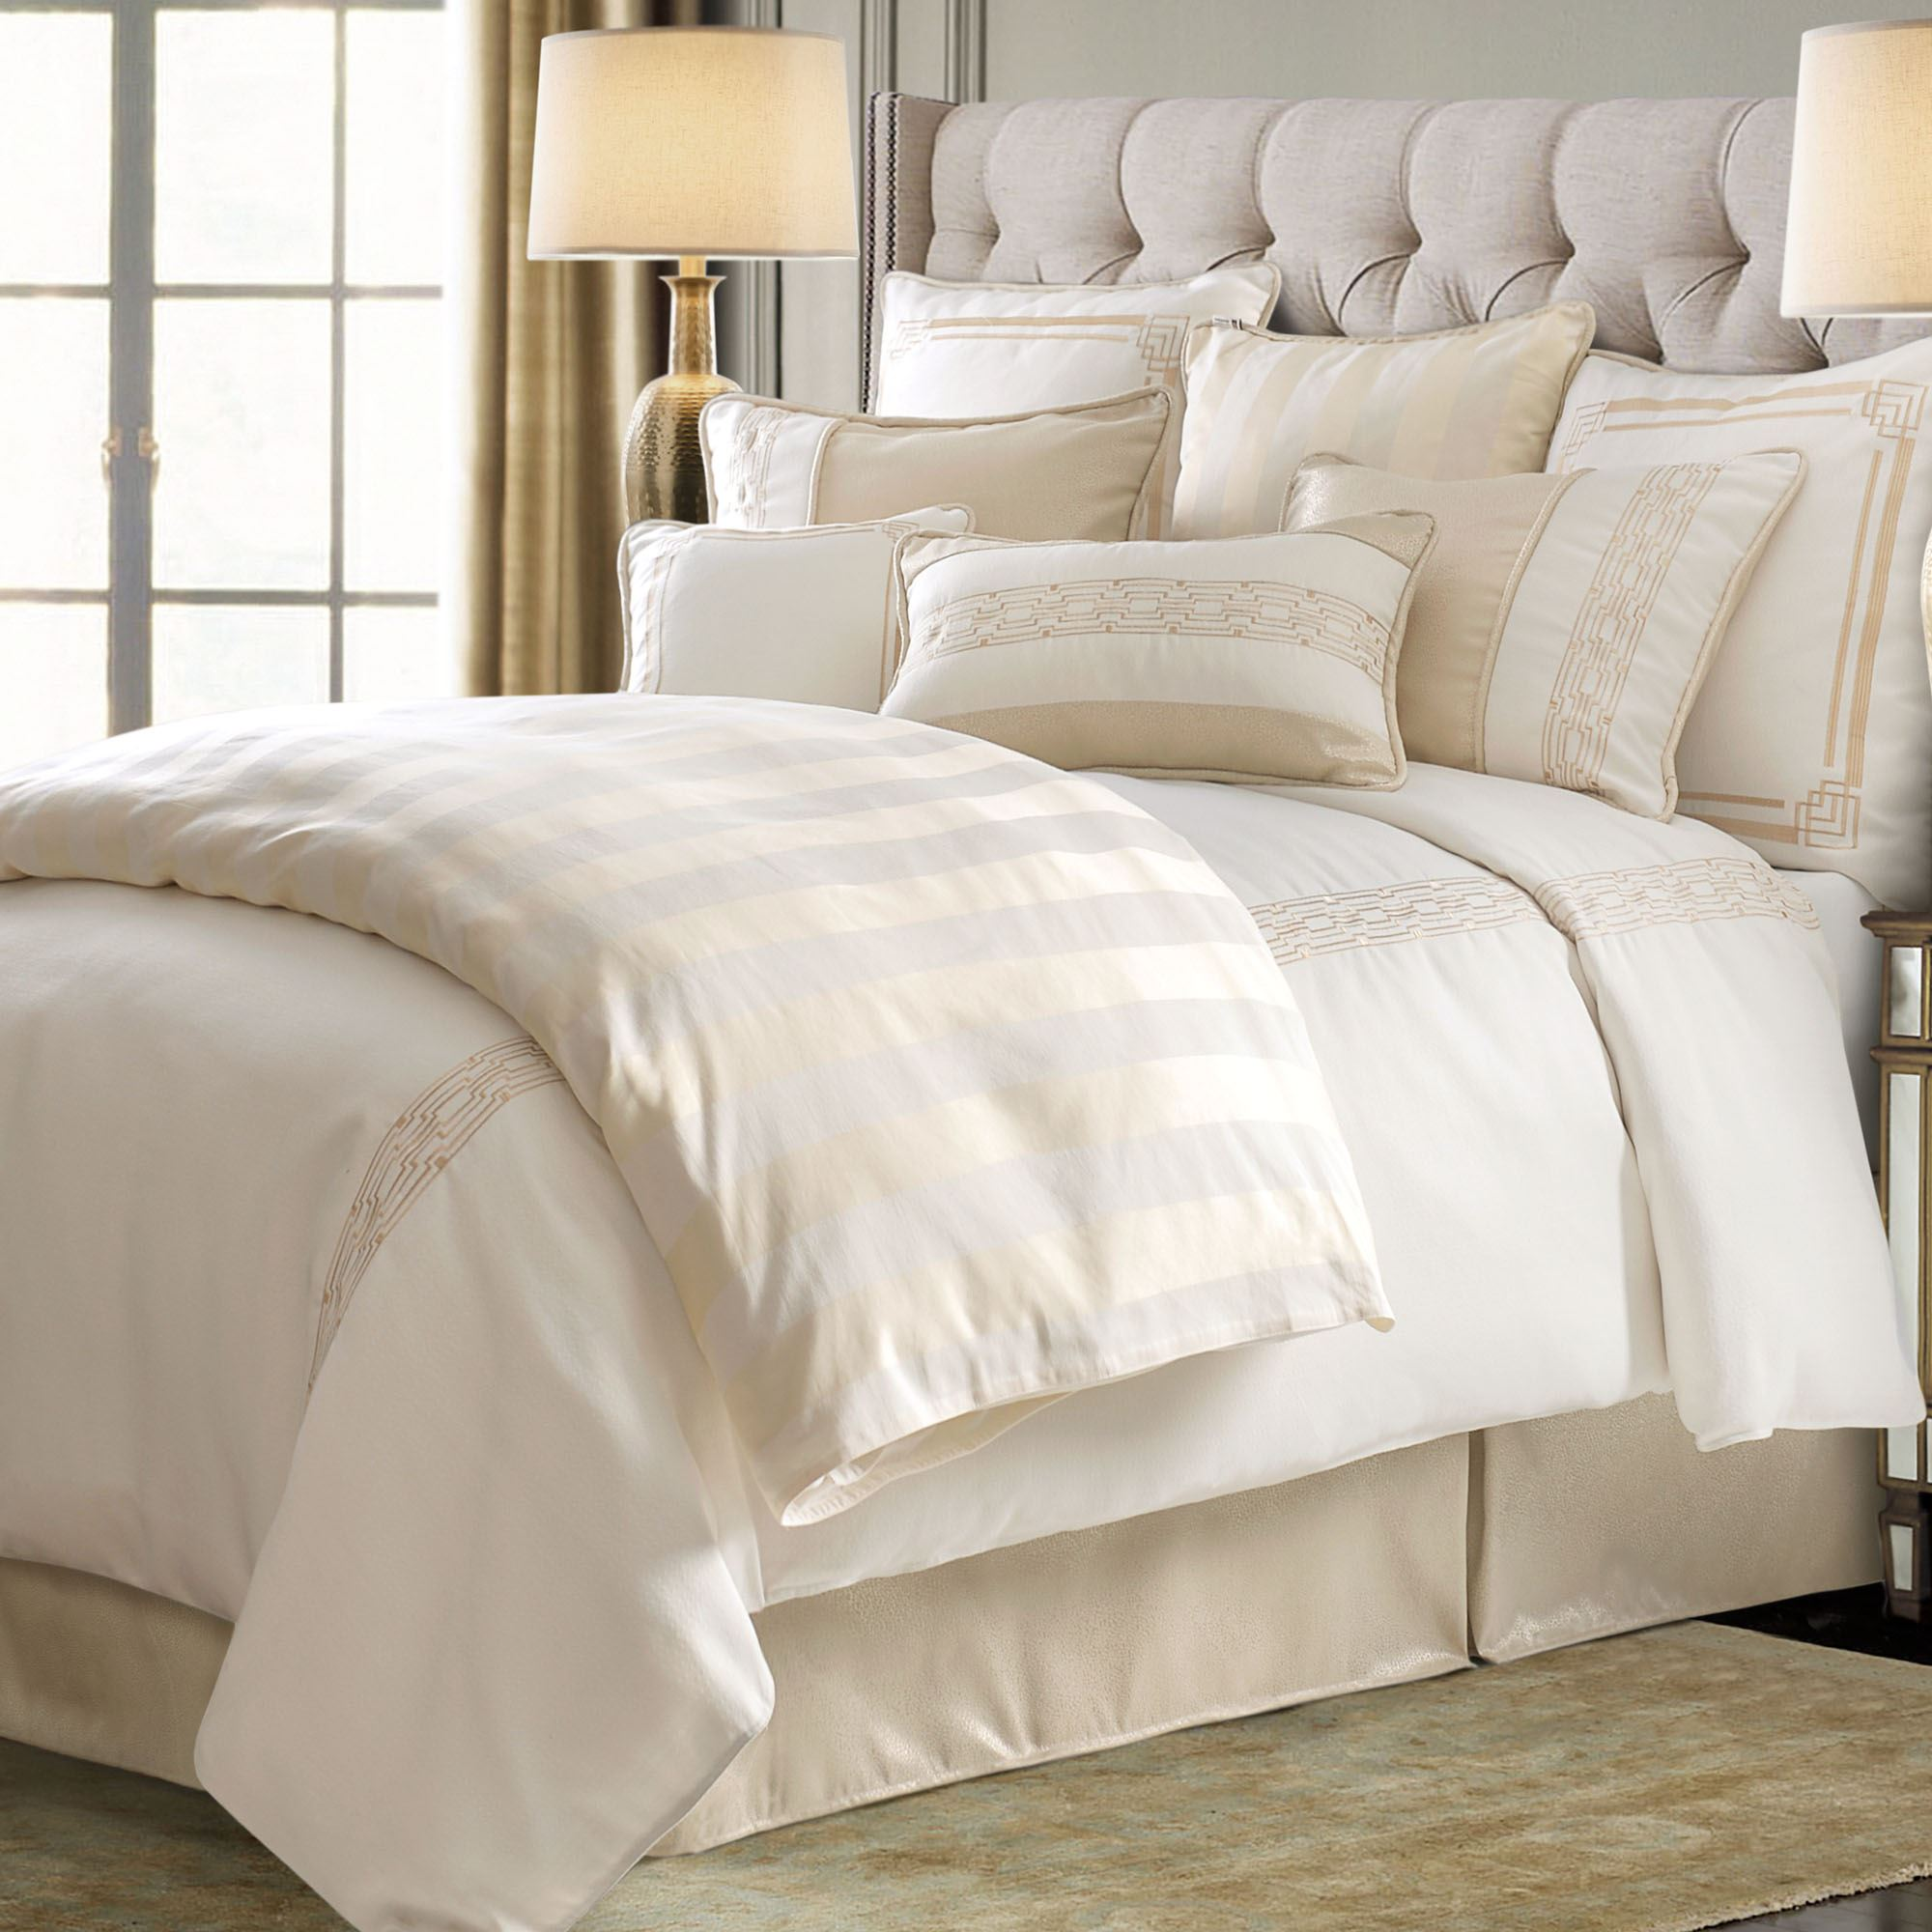 Hollywood Off White Embroidered Comforter Bedding